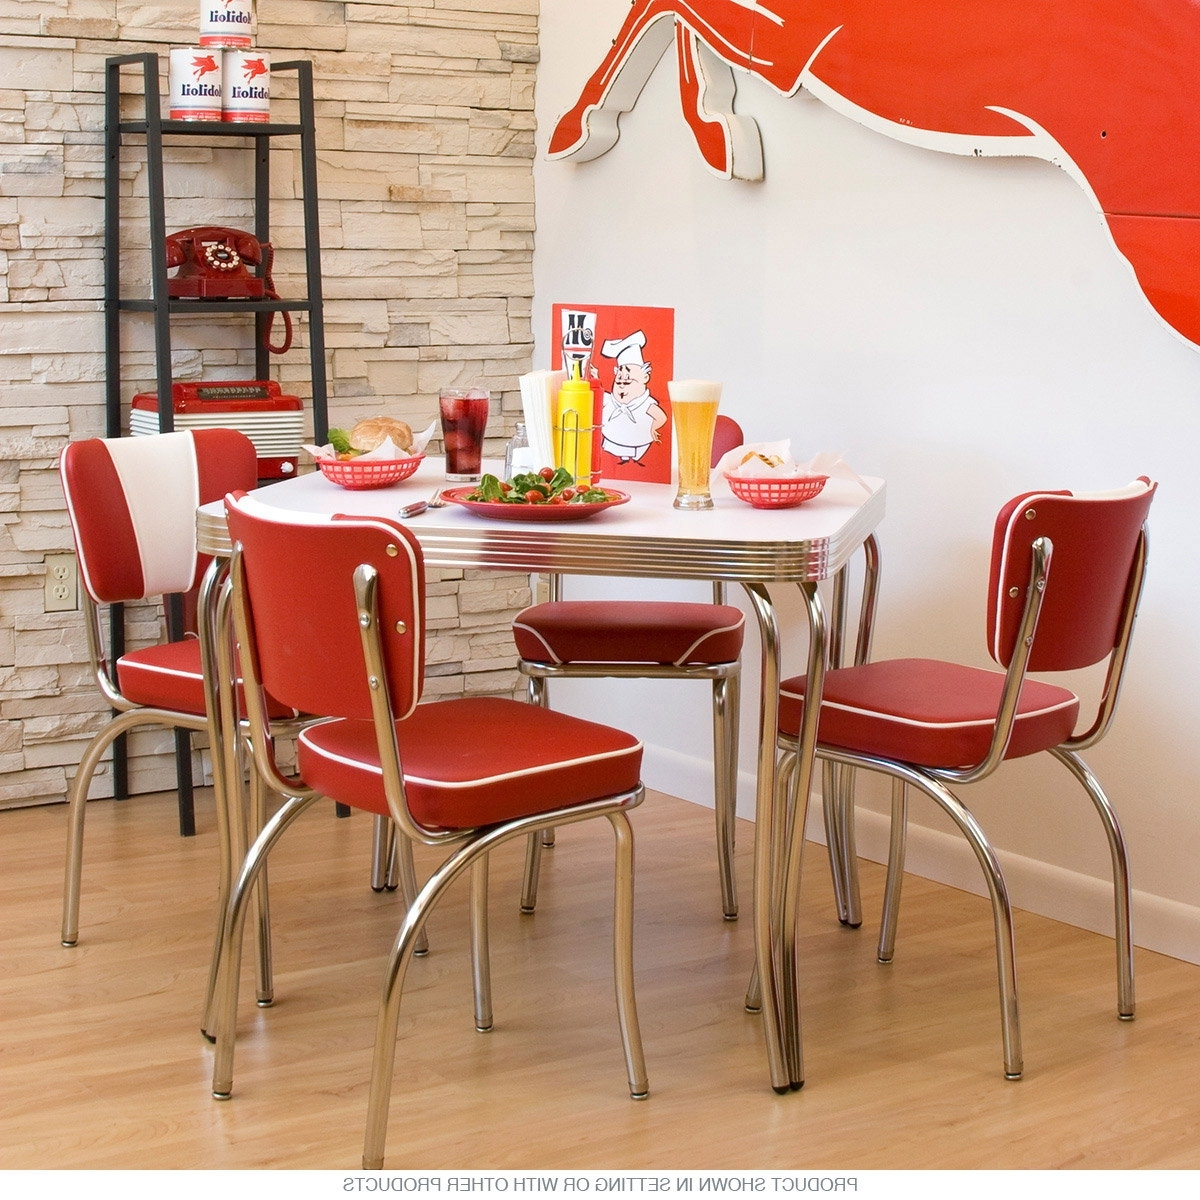 Chrome Dining Room Sets Pertaining To Famous Very Fashionable Retro Dining Table — Ugarelay Ugarelay (View 4 of 25)